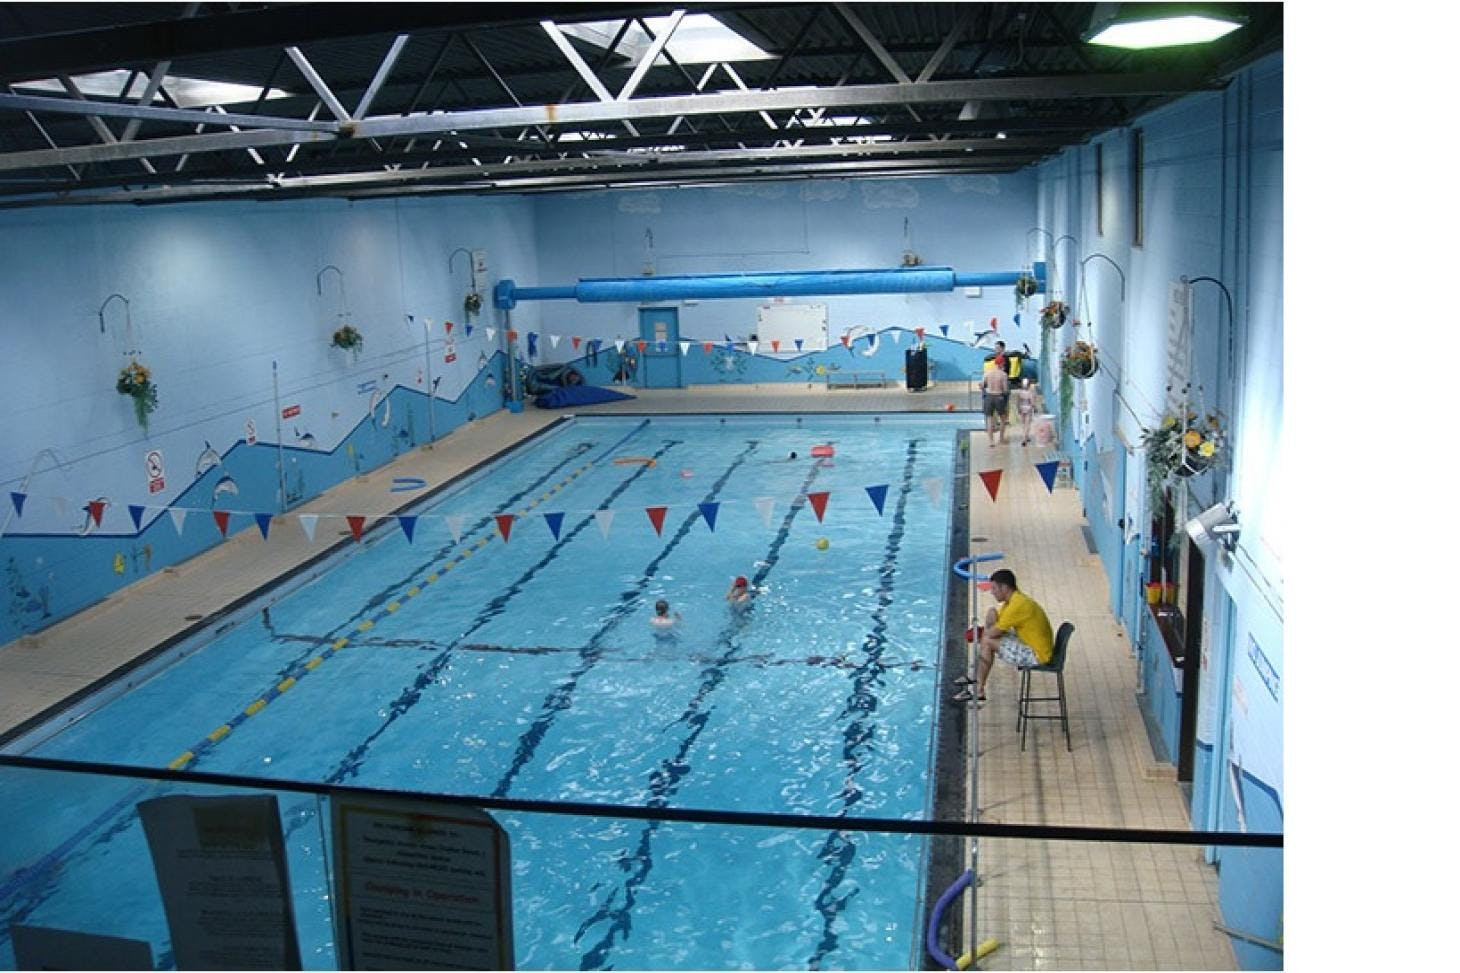 Portmarnock Sports & Leisure Club Indoor swimming pool